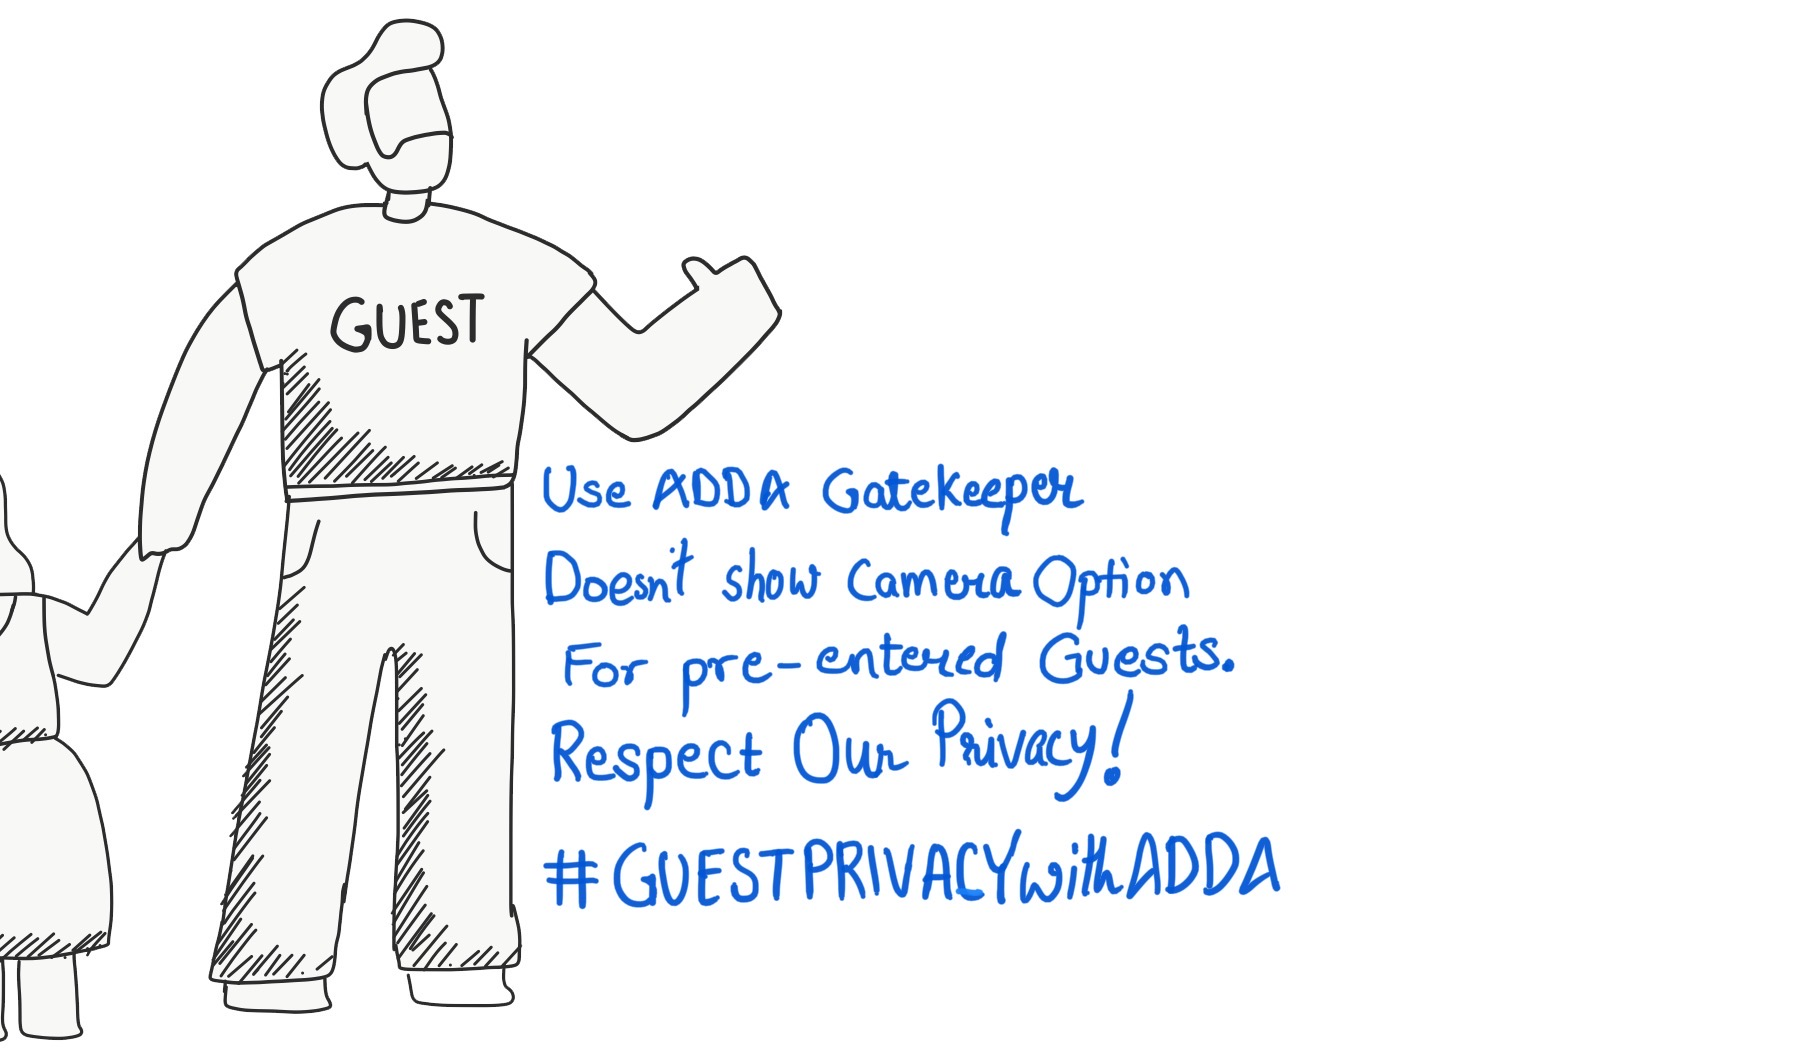 ADDA GateKeeper does not allow Photo of Guest during Visitor Entry